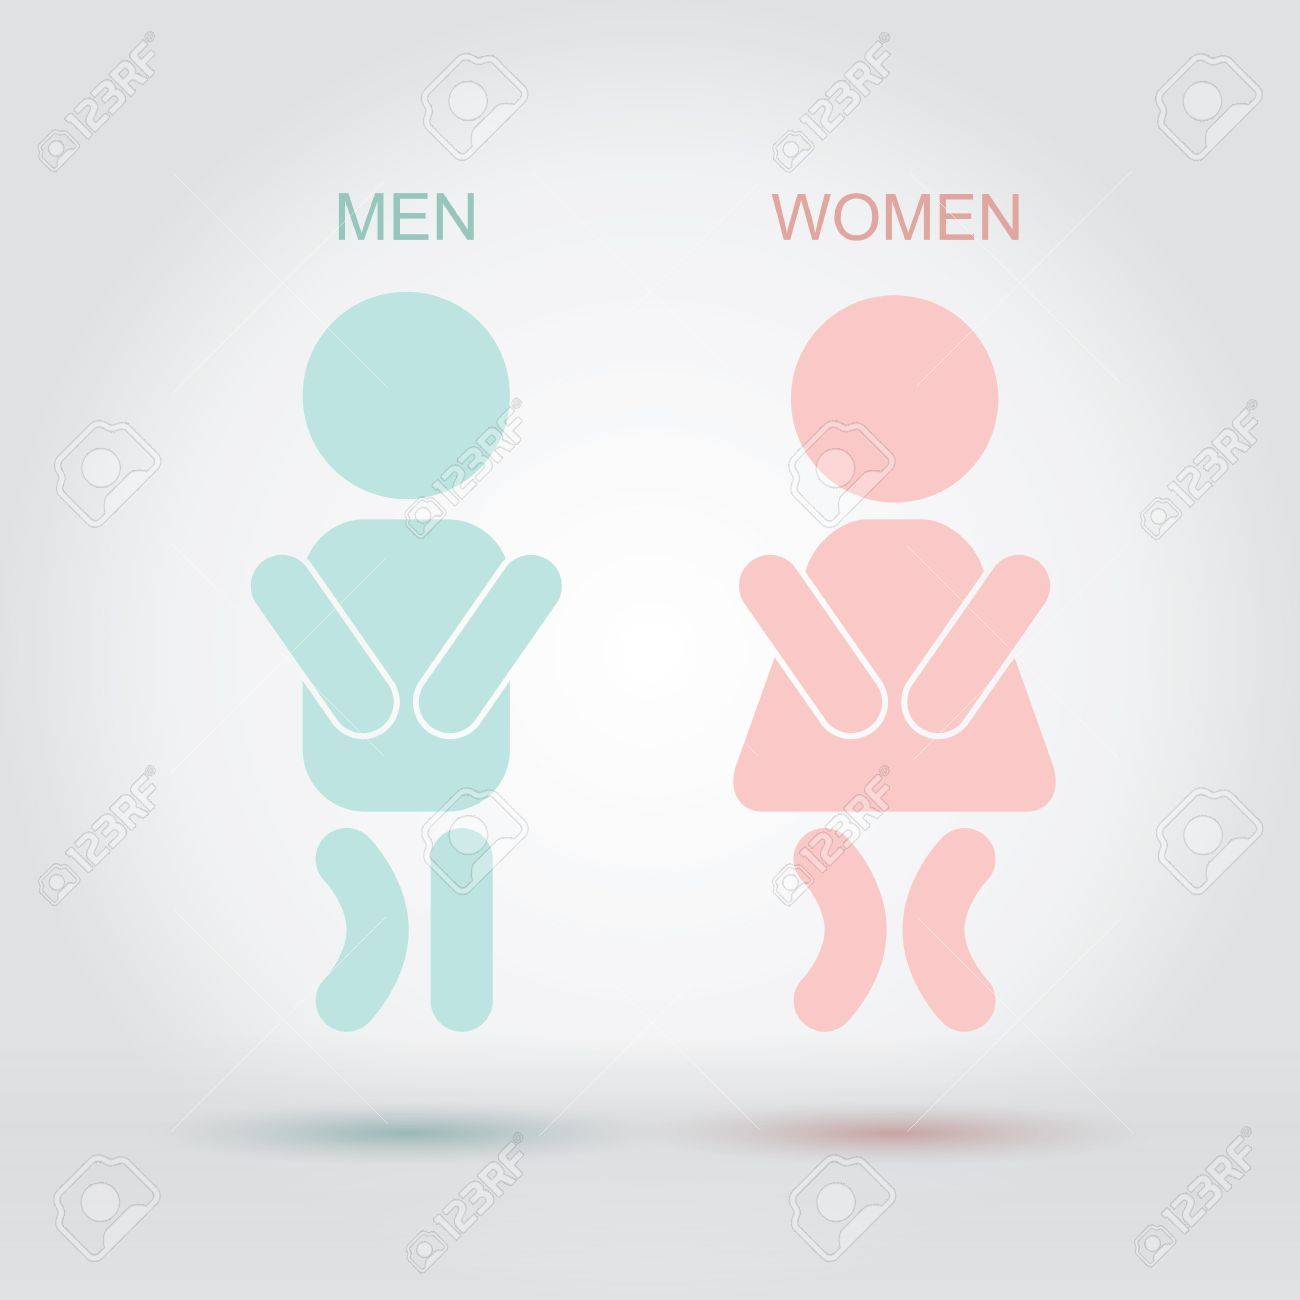 Bathroom Signs Holding Hands men women bathroom sign royalty free cliparts, vectors, and stock